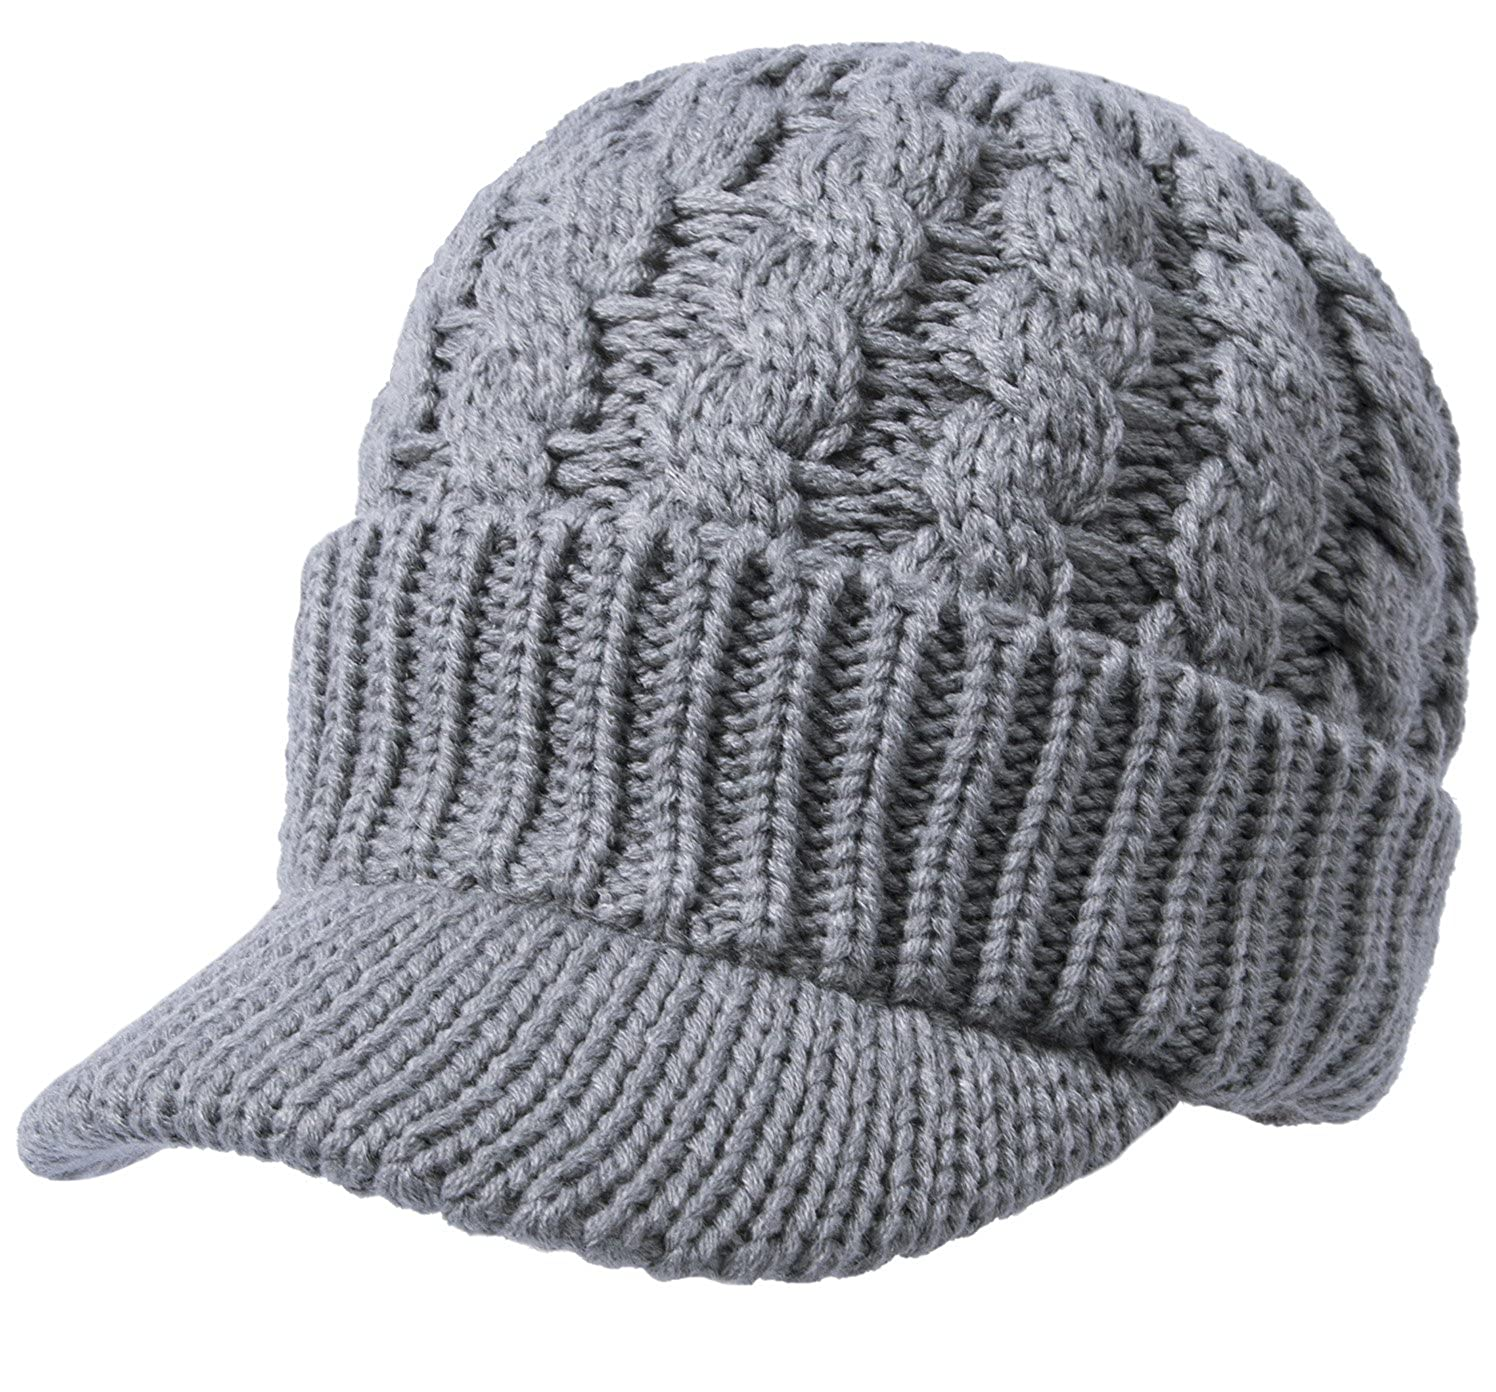 bf84bd85017 Amazon.com  Sierry Cable Knit Hat